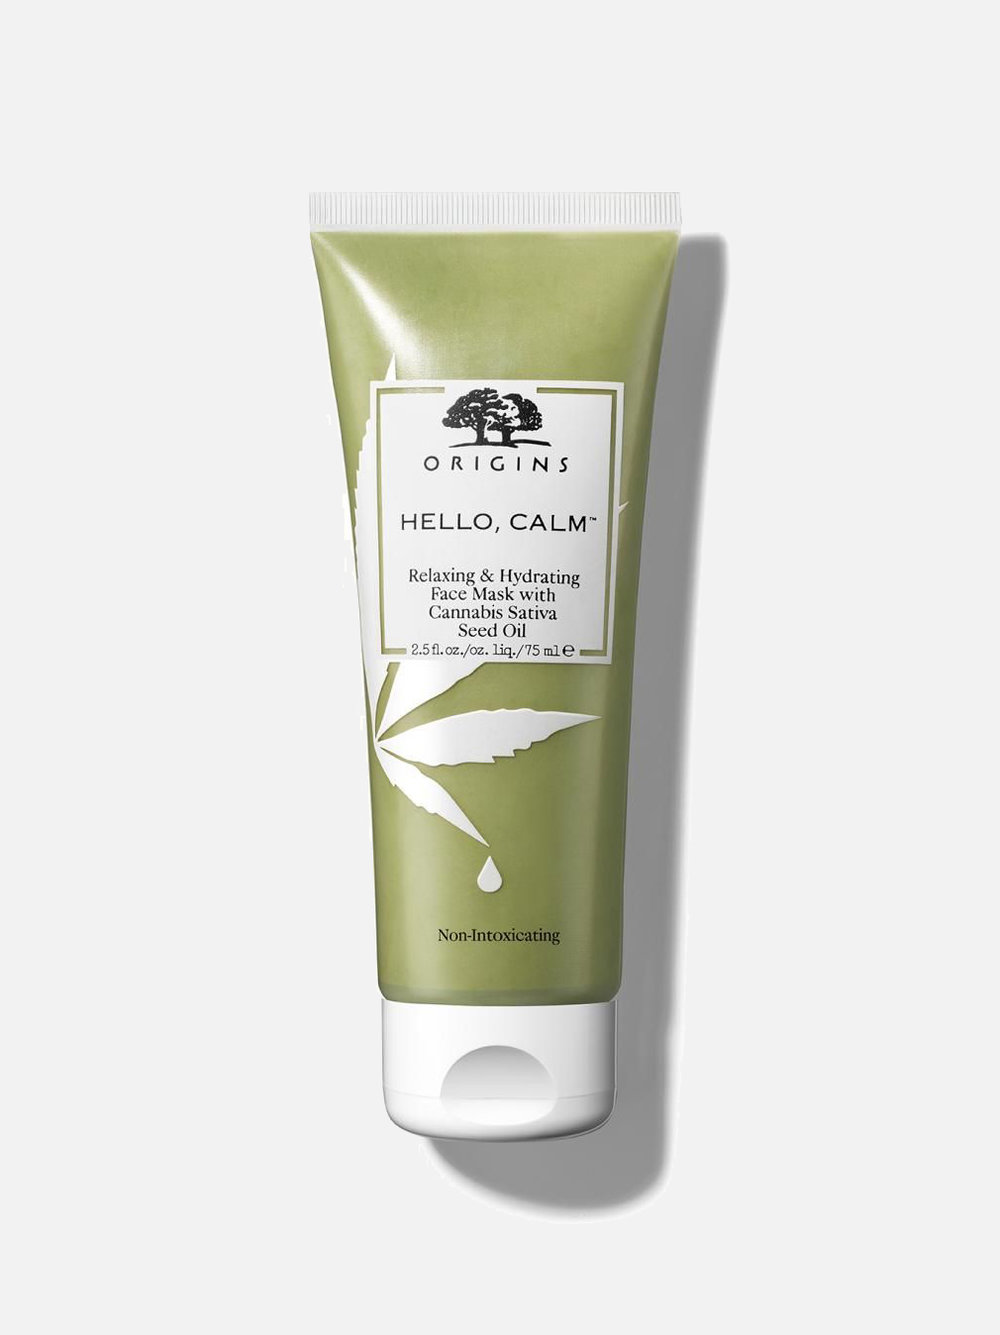 Hemp Based Beauty Products - Origins Hello, Calm™ Face Mask